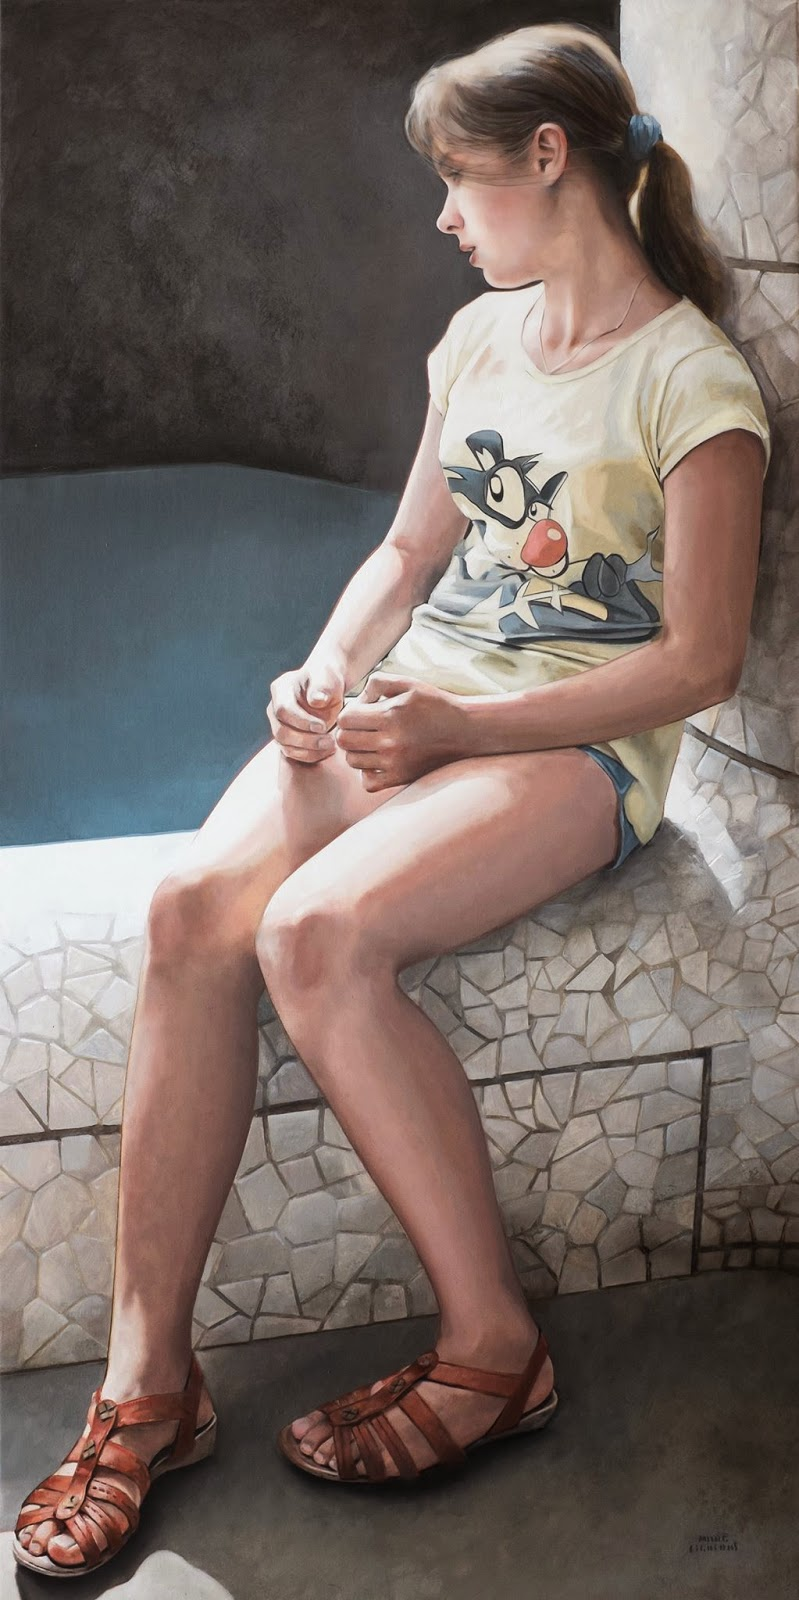 Hyper Realistic Girls Figure Painting By Marc Figueras 25